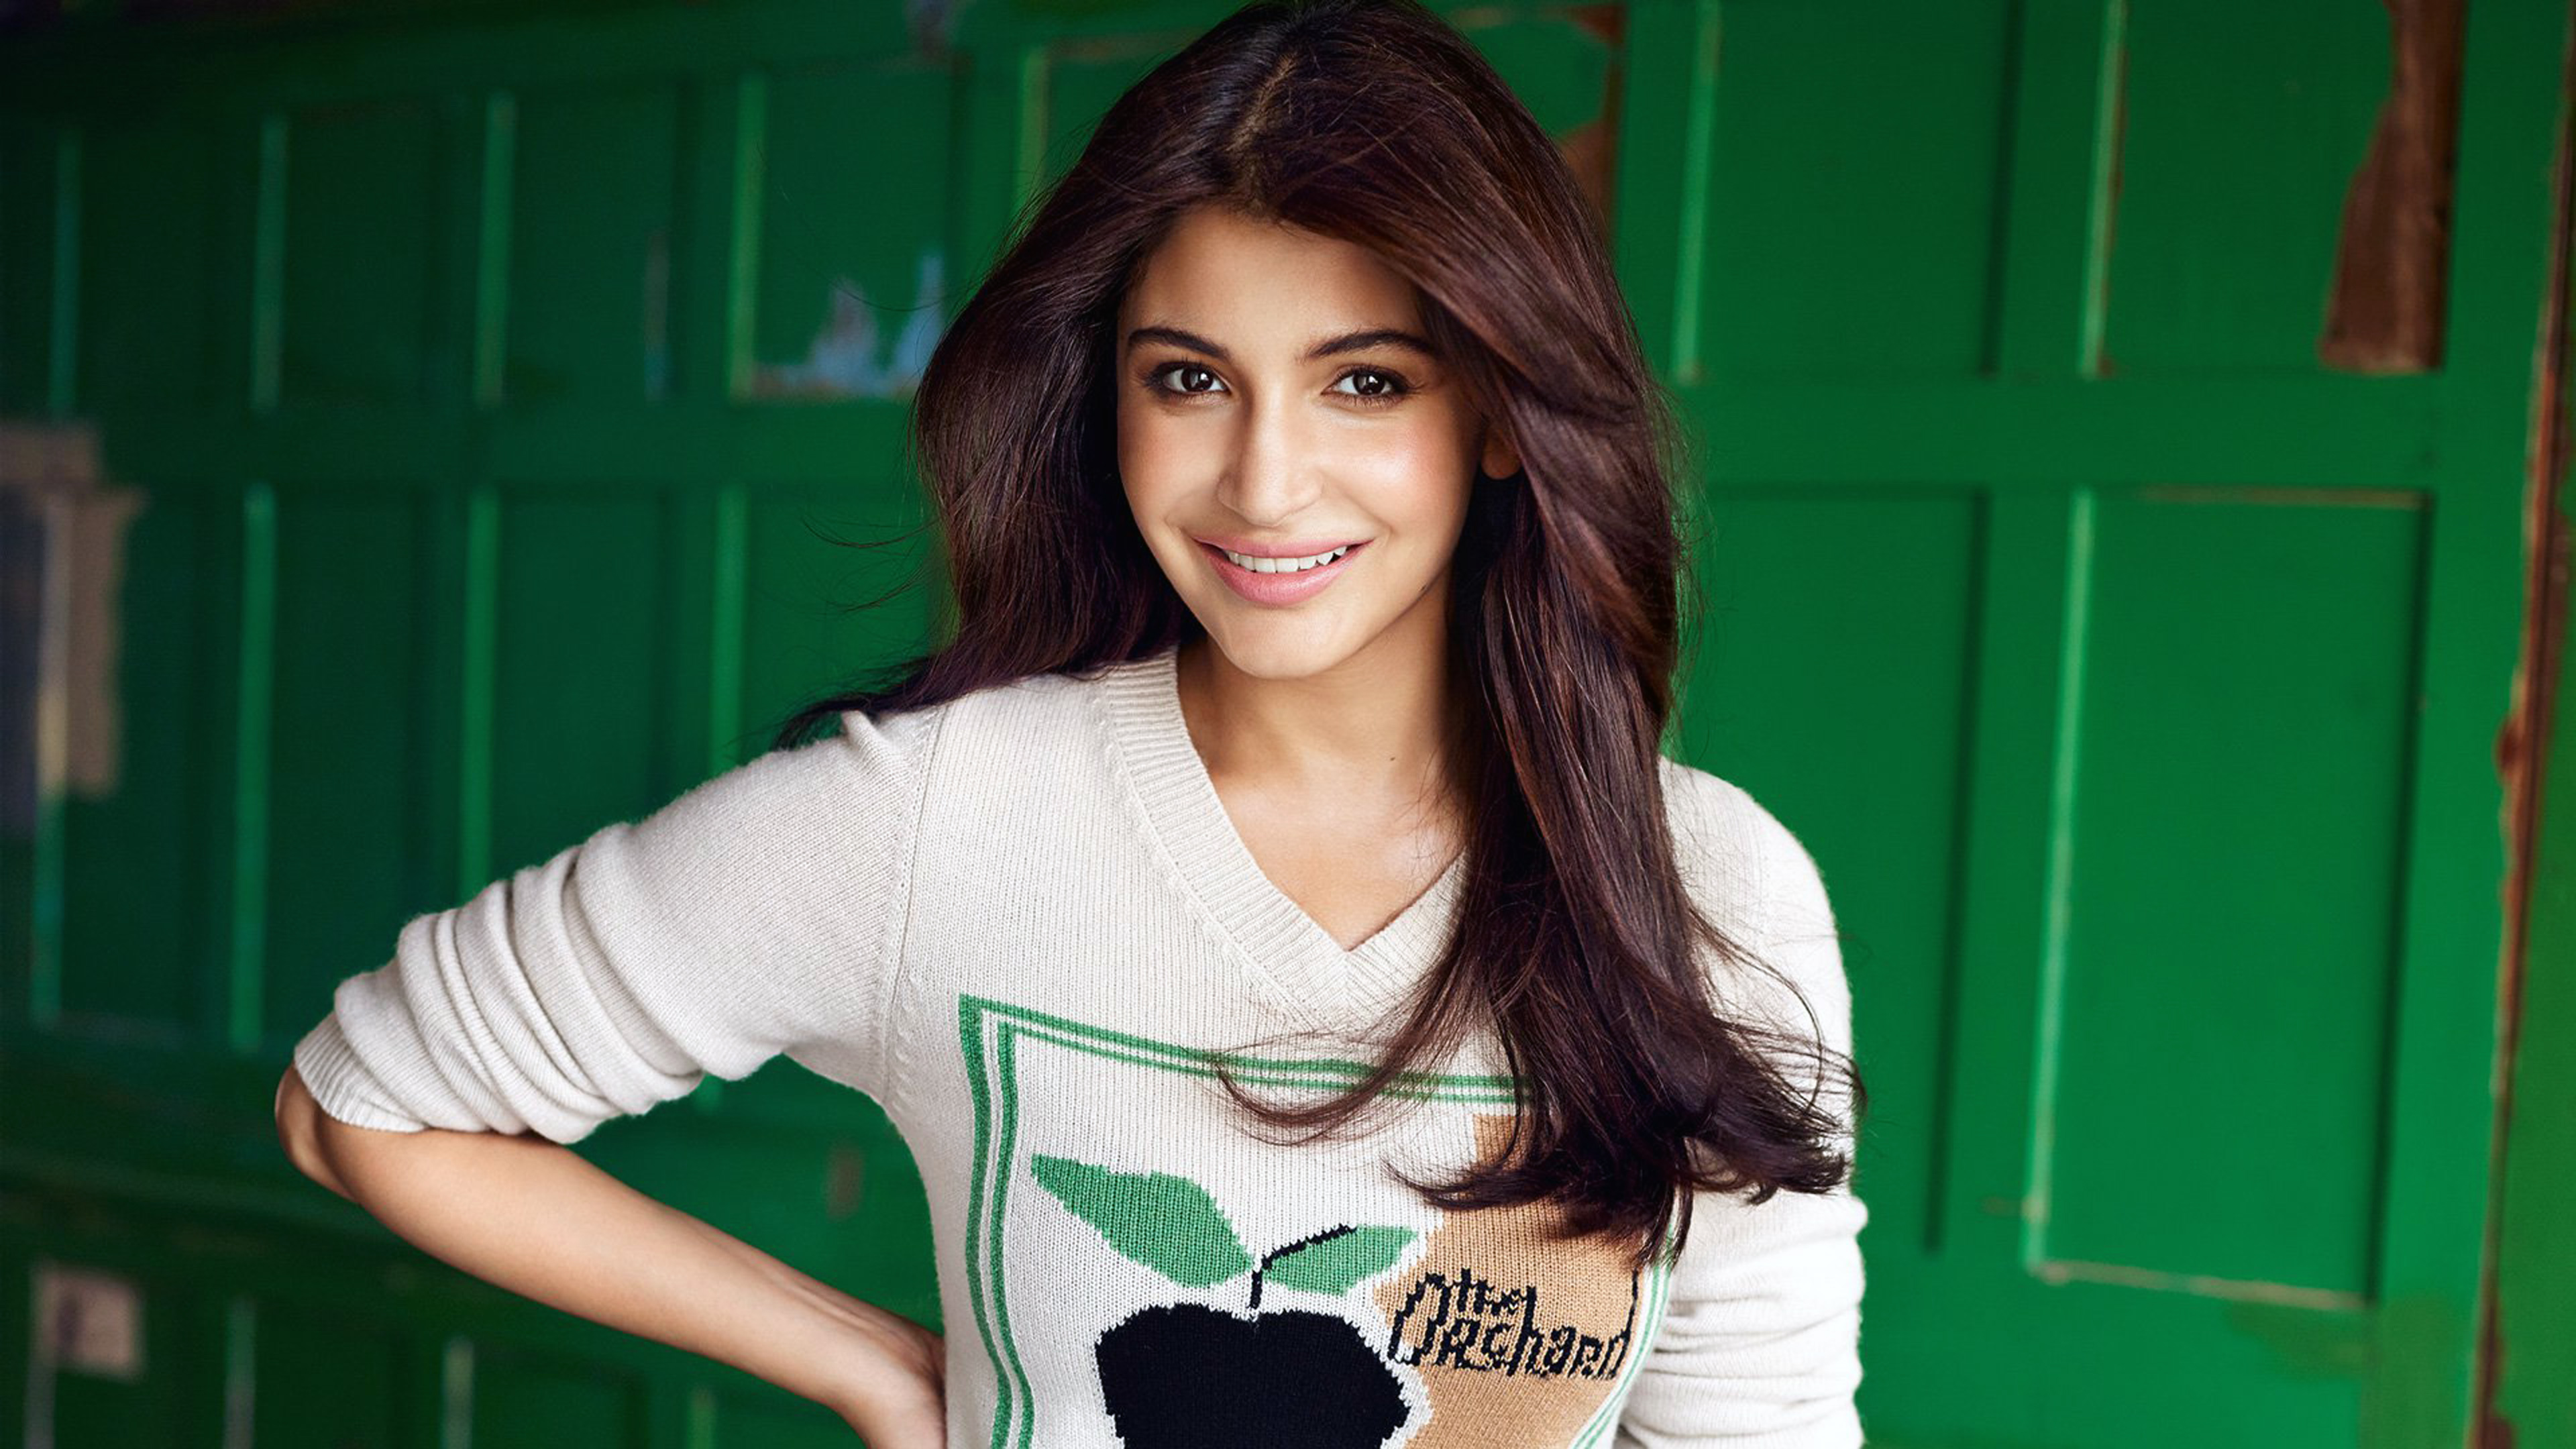 anushka sharma wallpaper 4k background